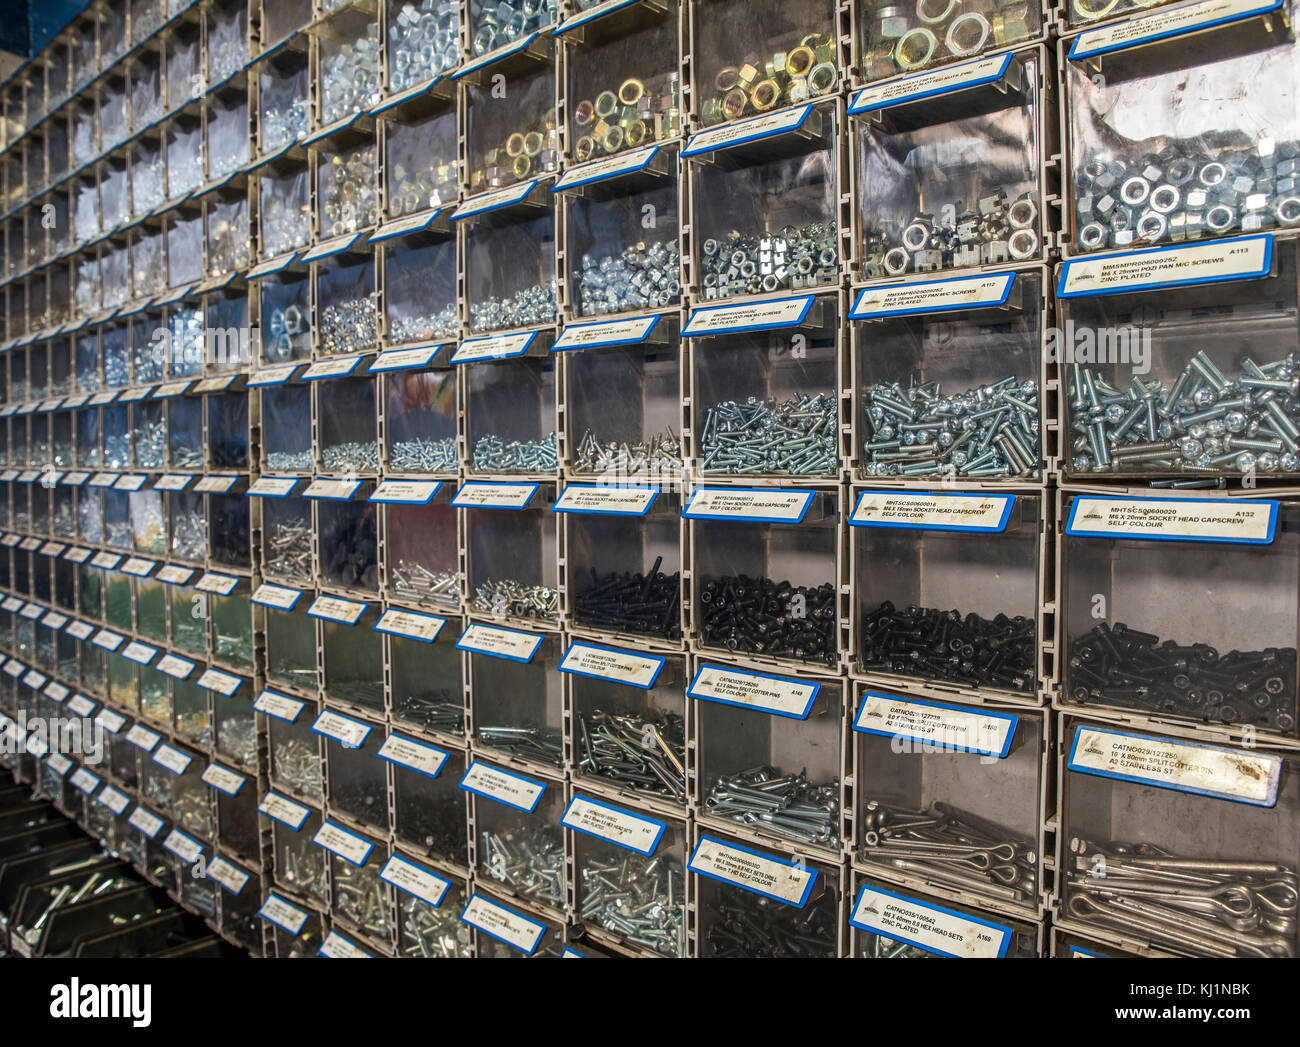 Parts Bin, Parts Storage, Nuts, Bolts and Washers - Etches